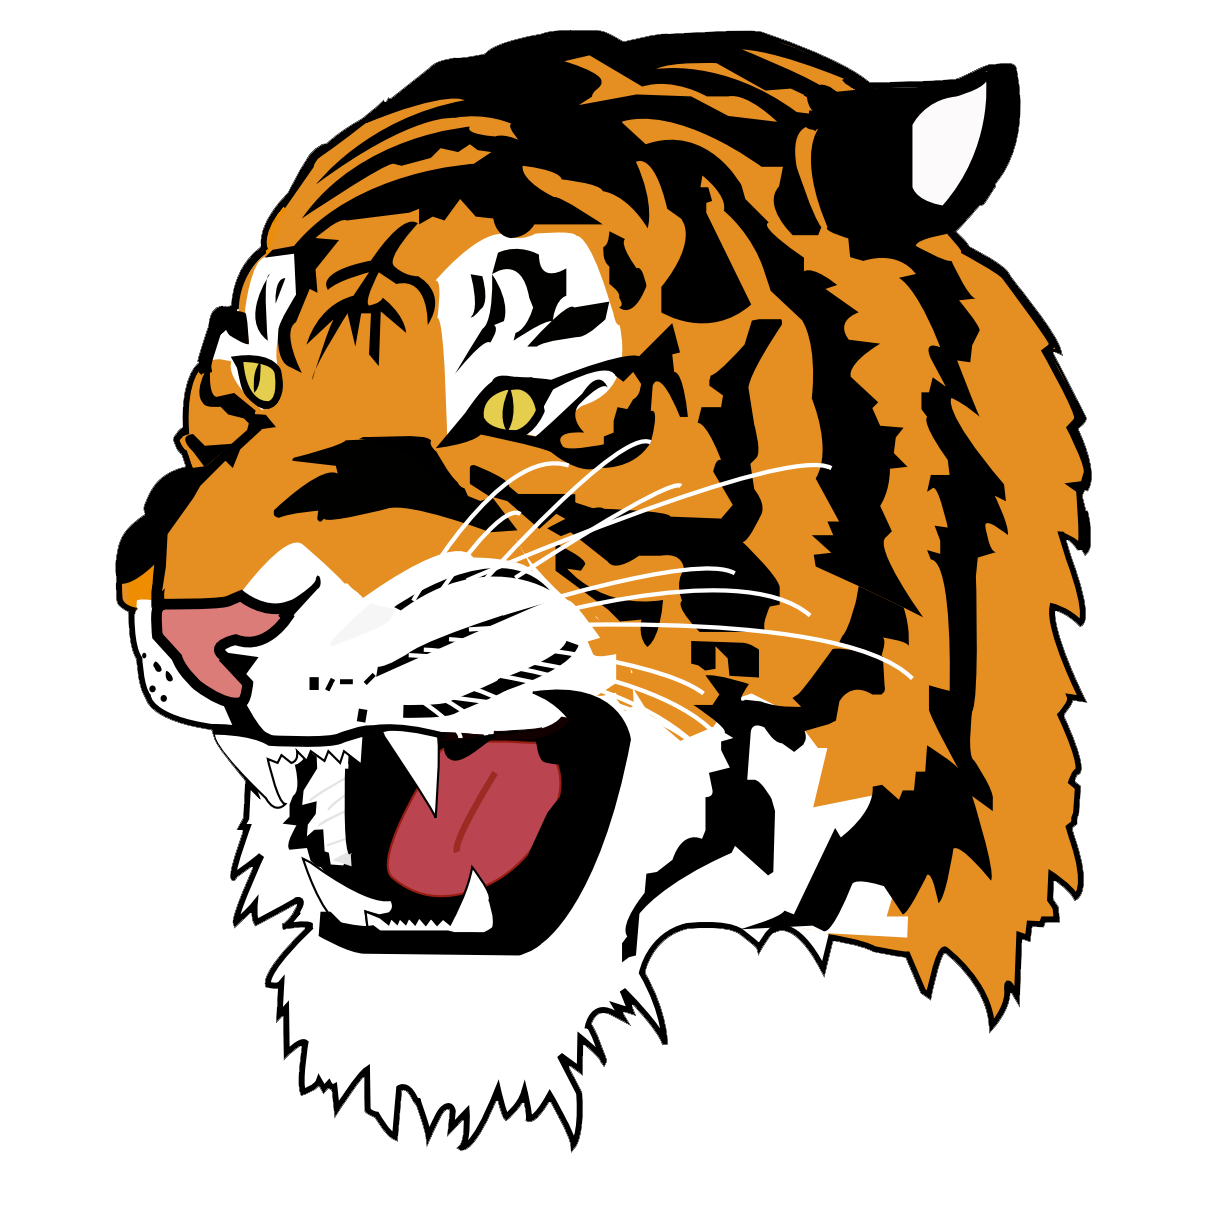 Urbana High School logo